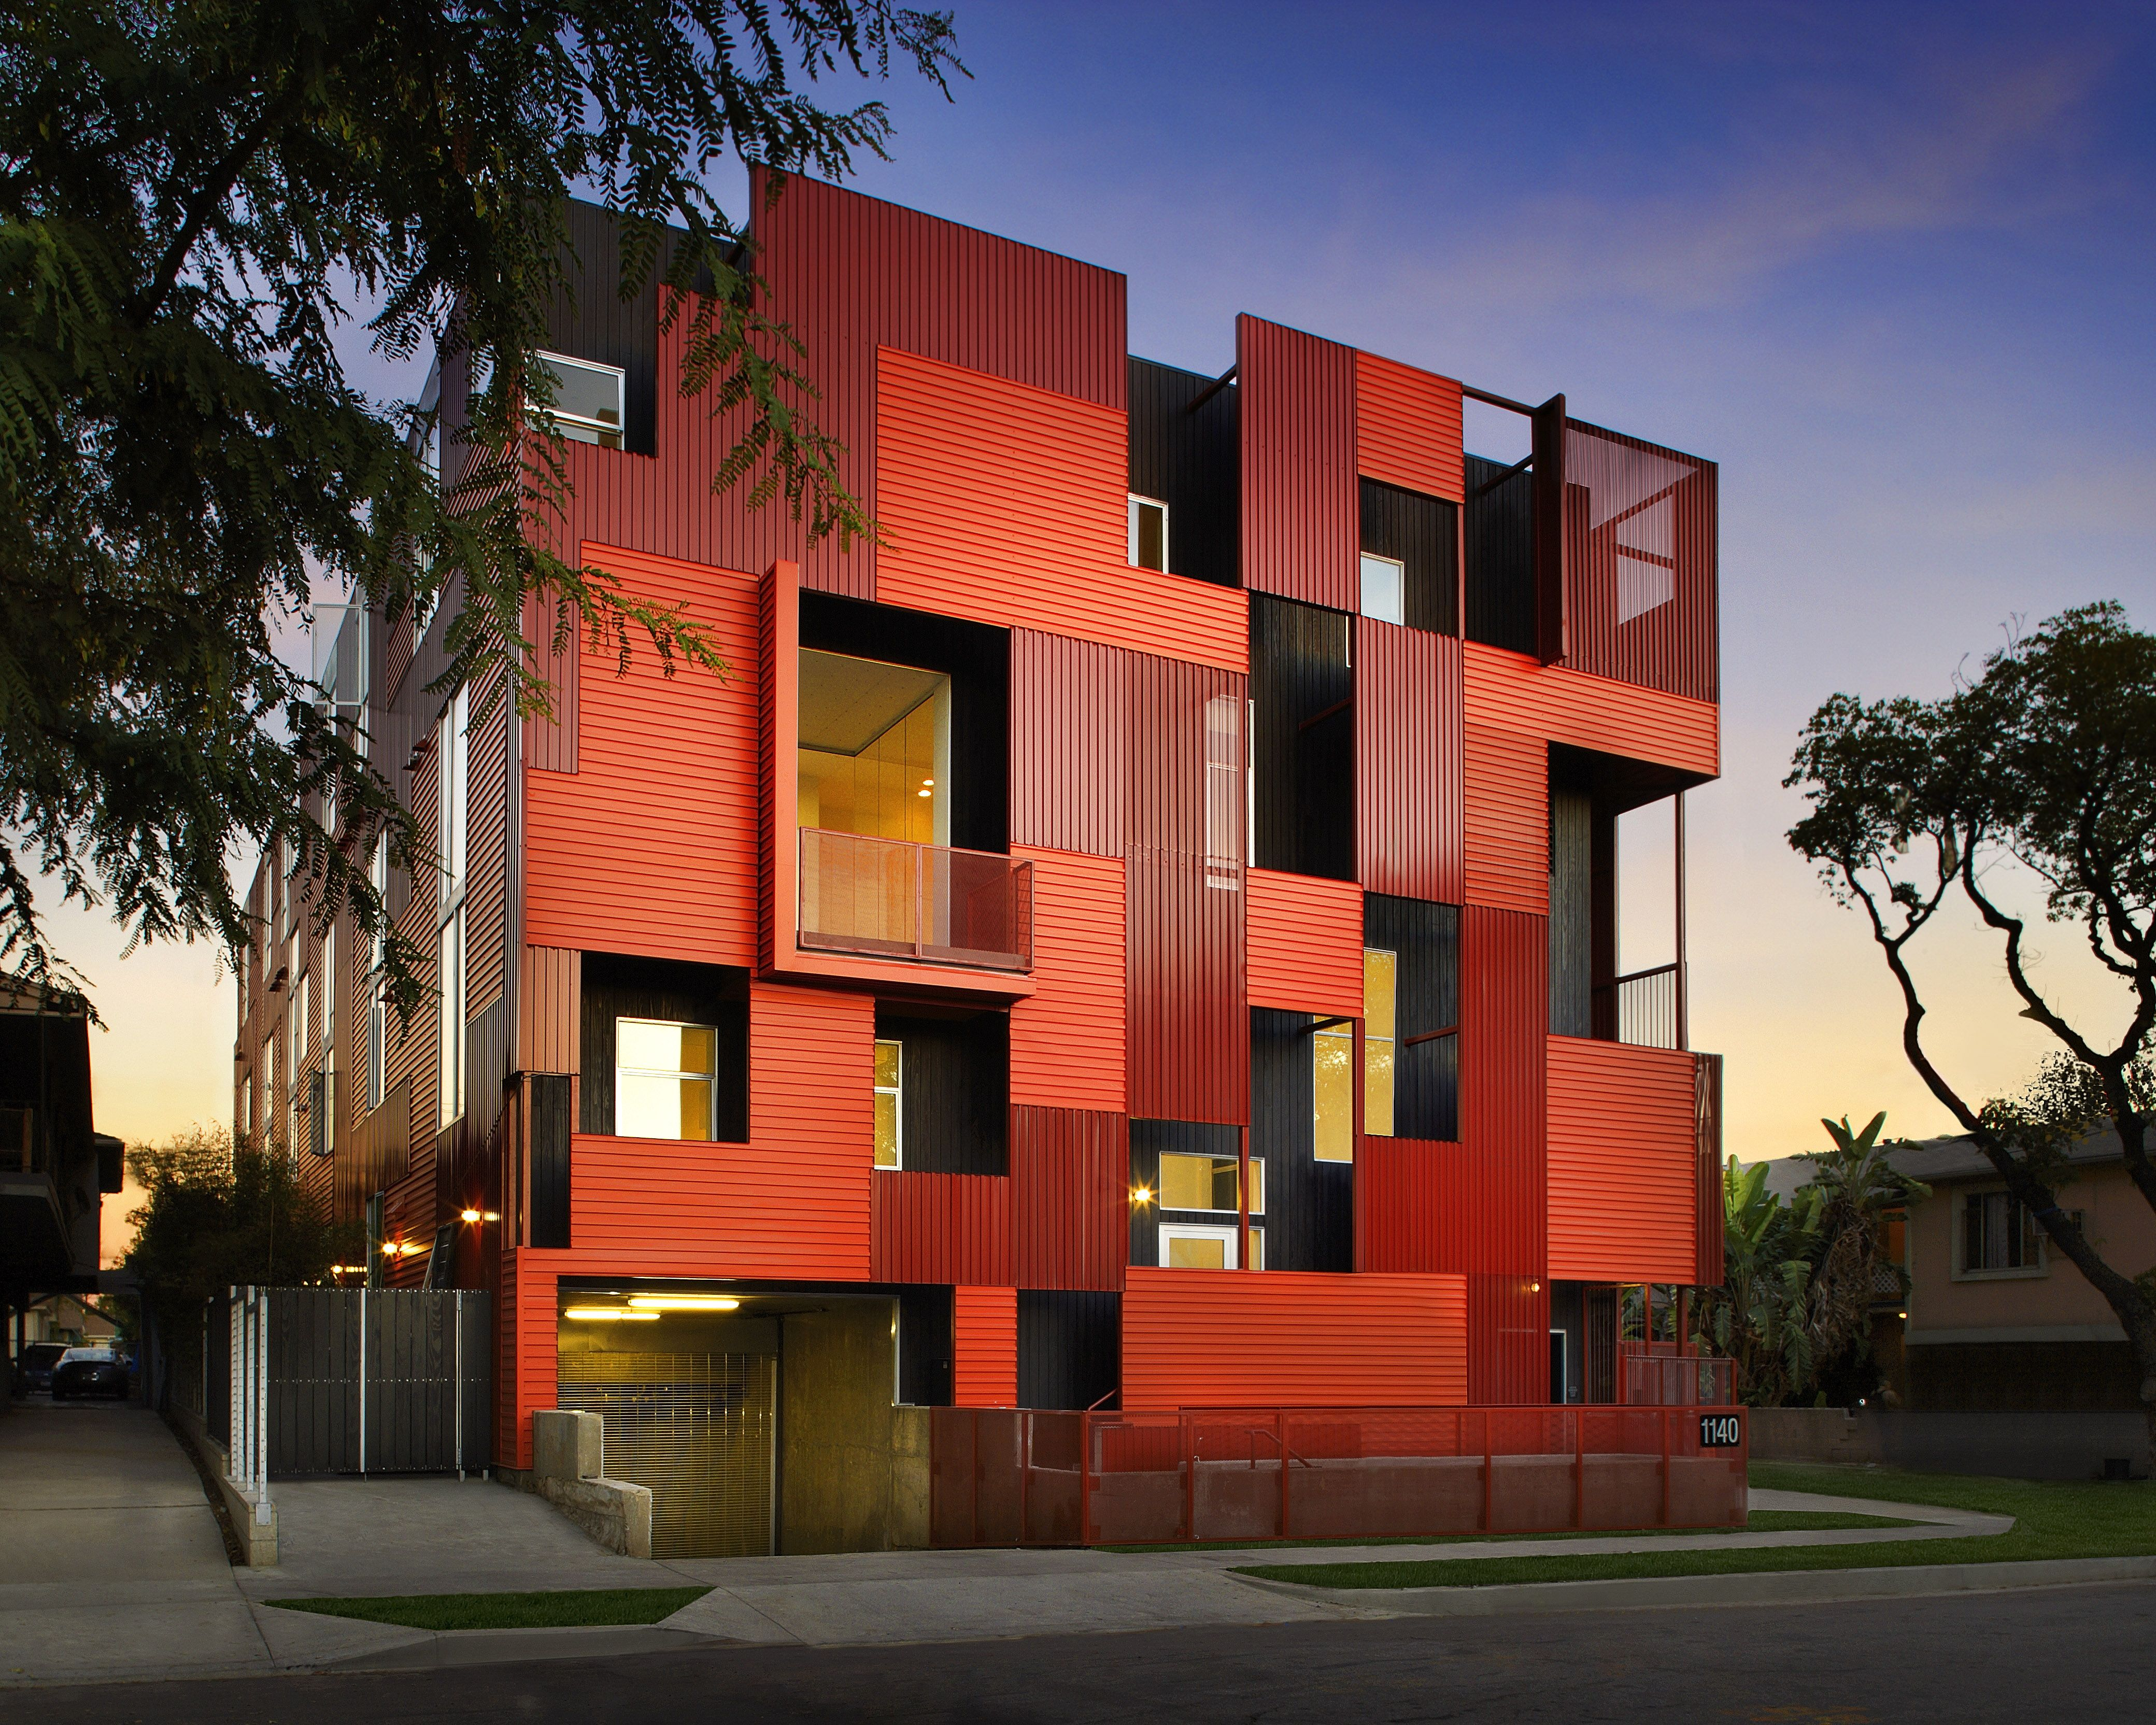 West Hollywood Apartment Building Raucous Orange And